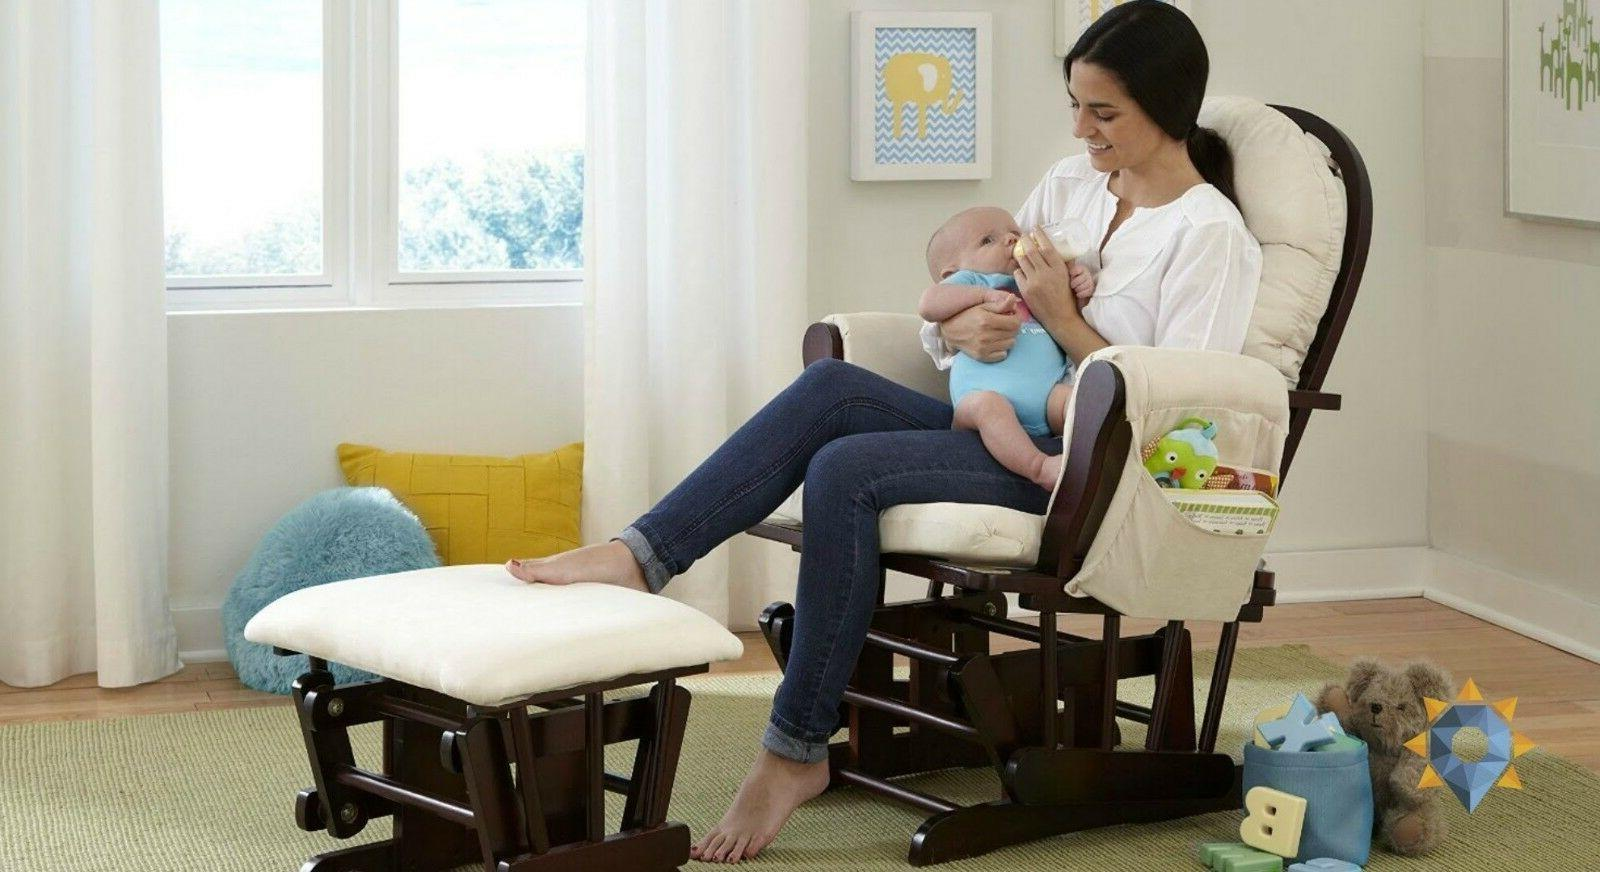 Gliding Chair Nursery Rocker Wooden Chairs Mother and